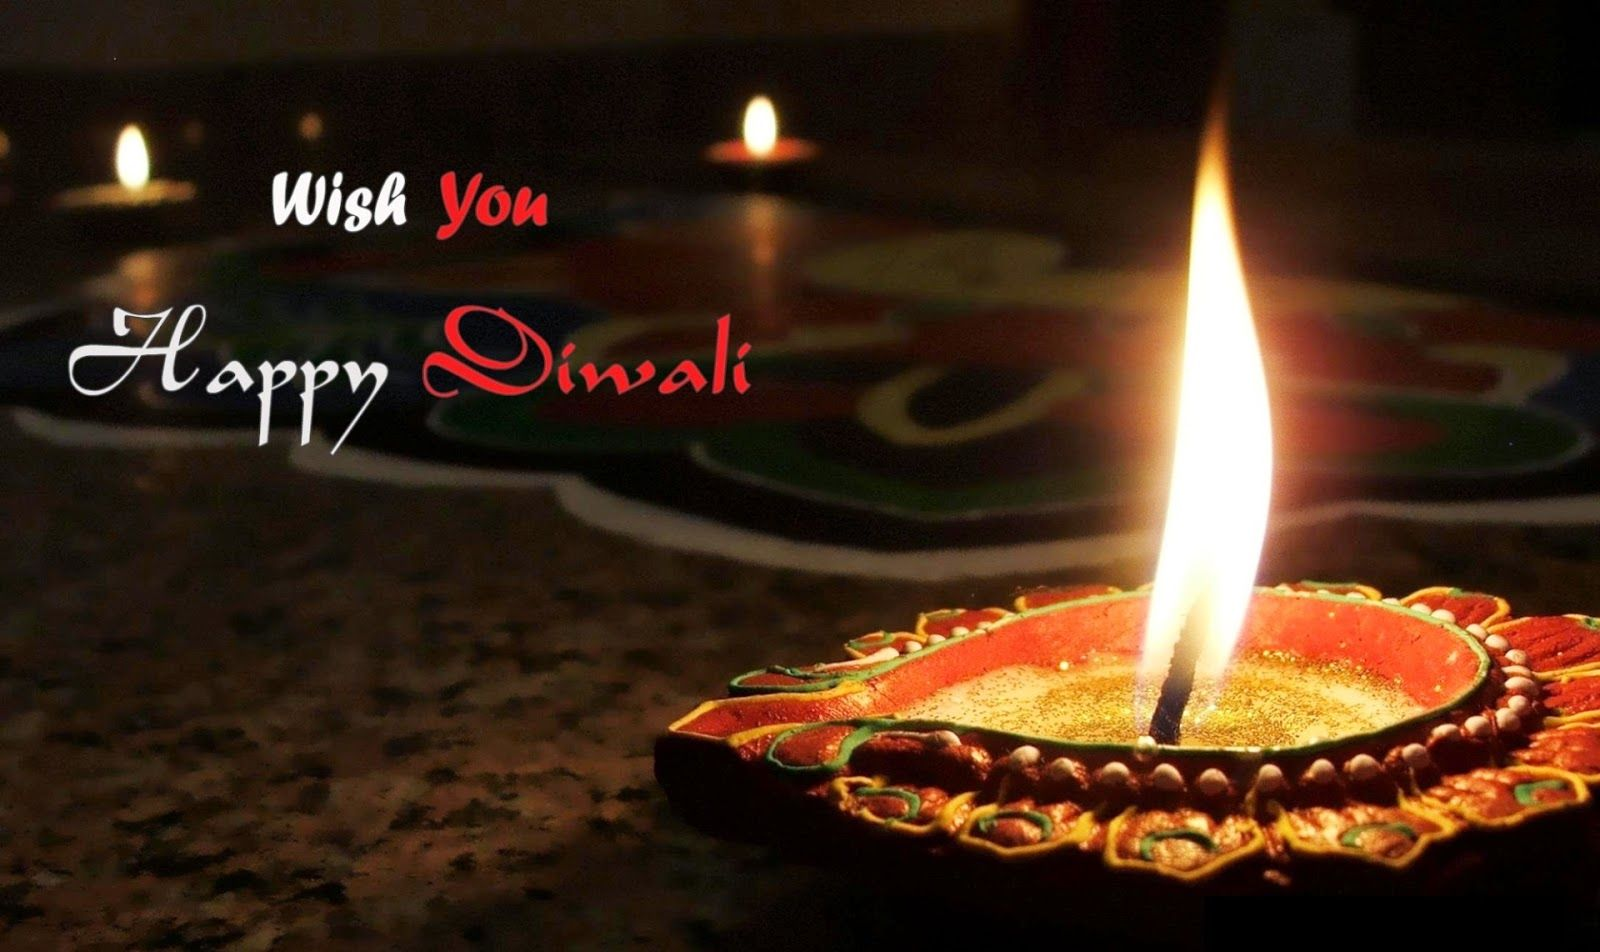 Happy diwali wishes happy diwali whatsapp dp happy diwali whatsapp happy diwali poems in english 2015 short poems m4hsunfo Gallery